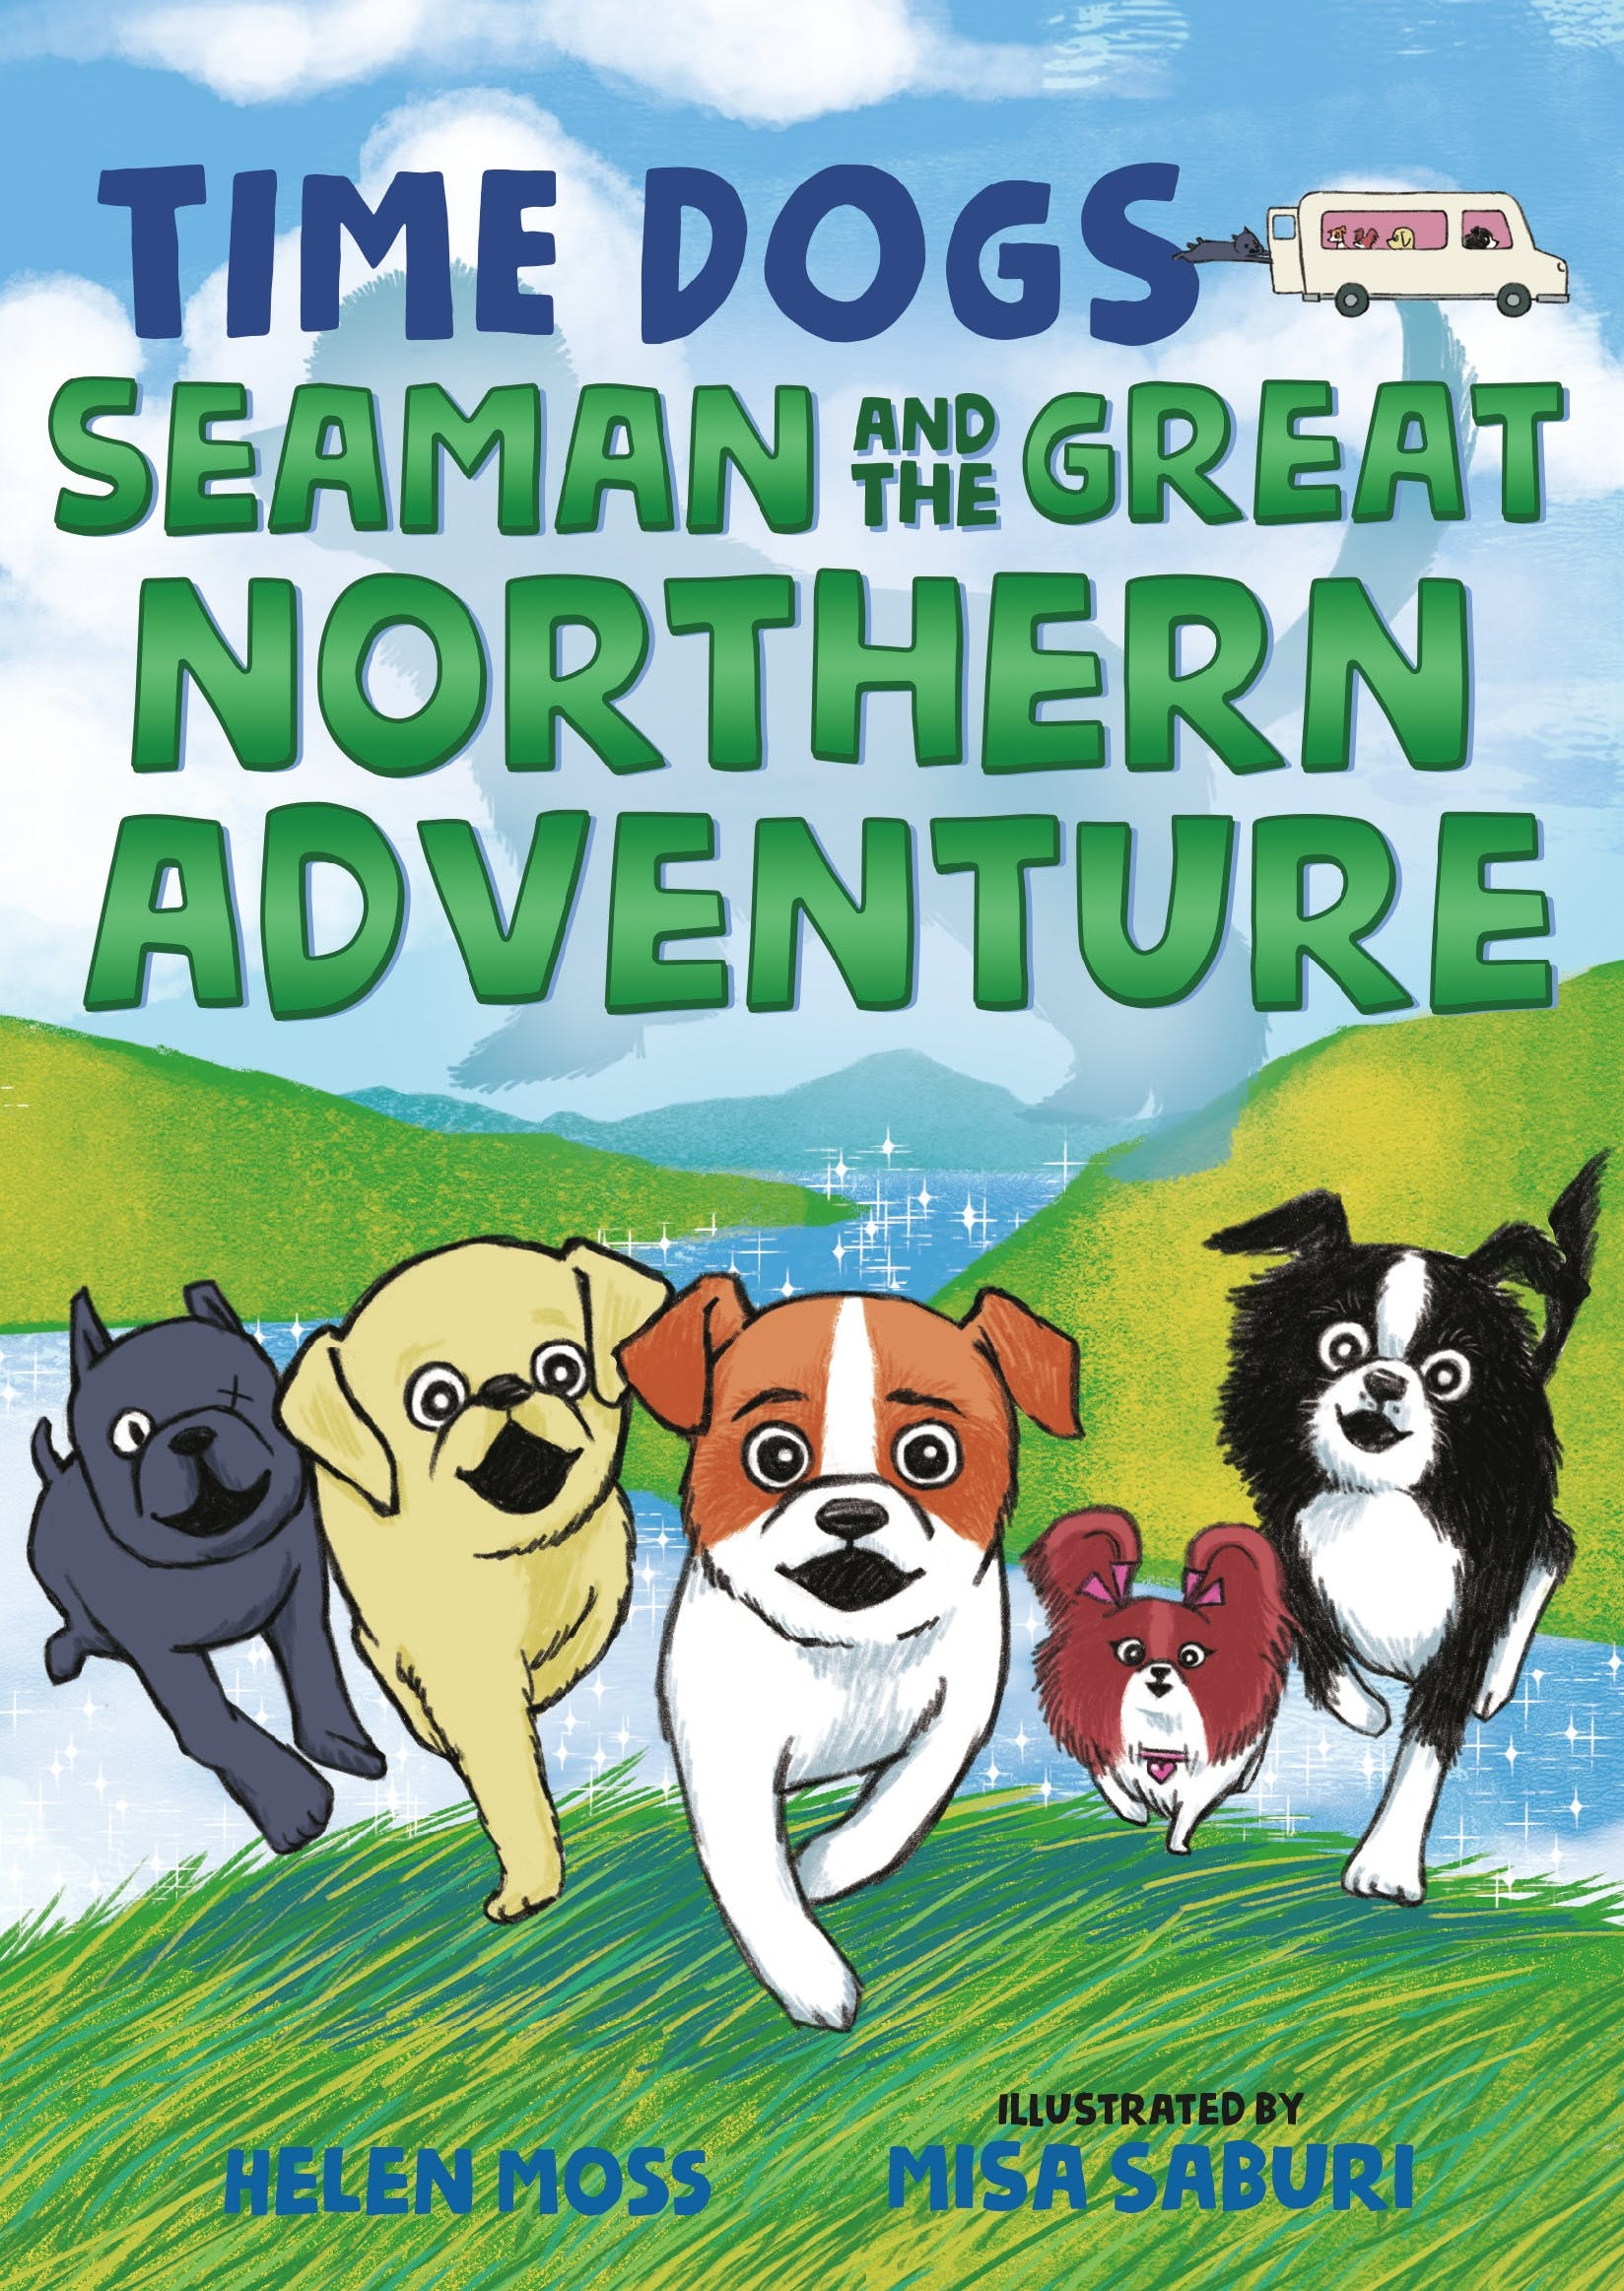 Image of Time Dogs: Seaman and the Great Northern Adventure